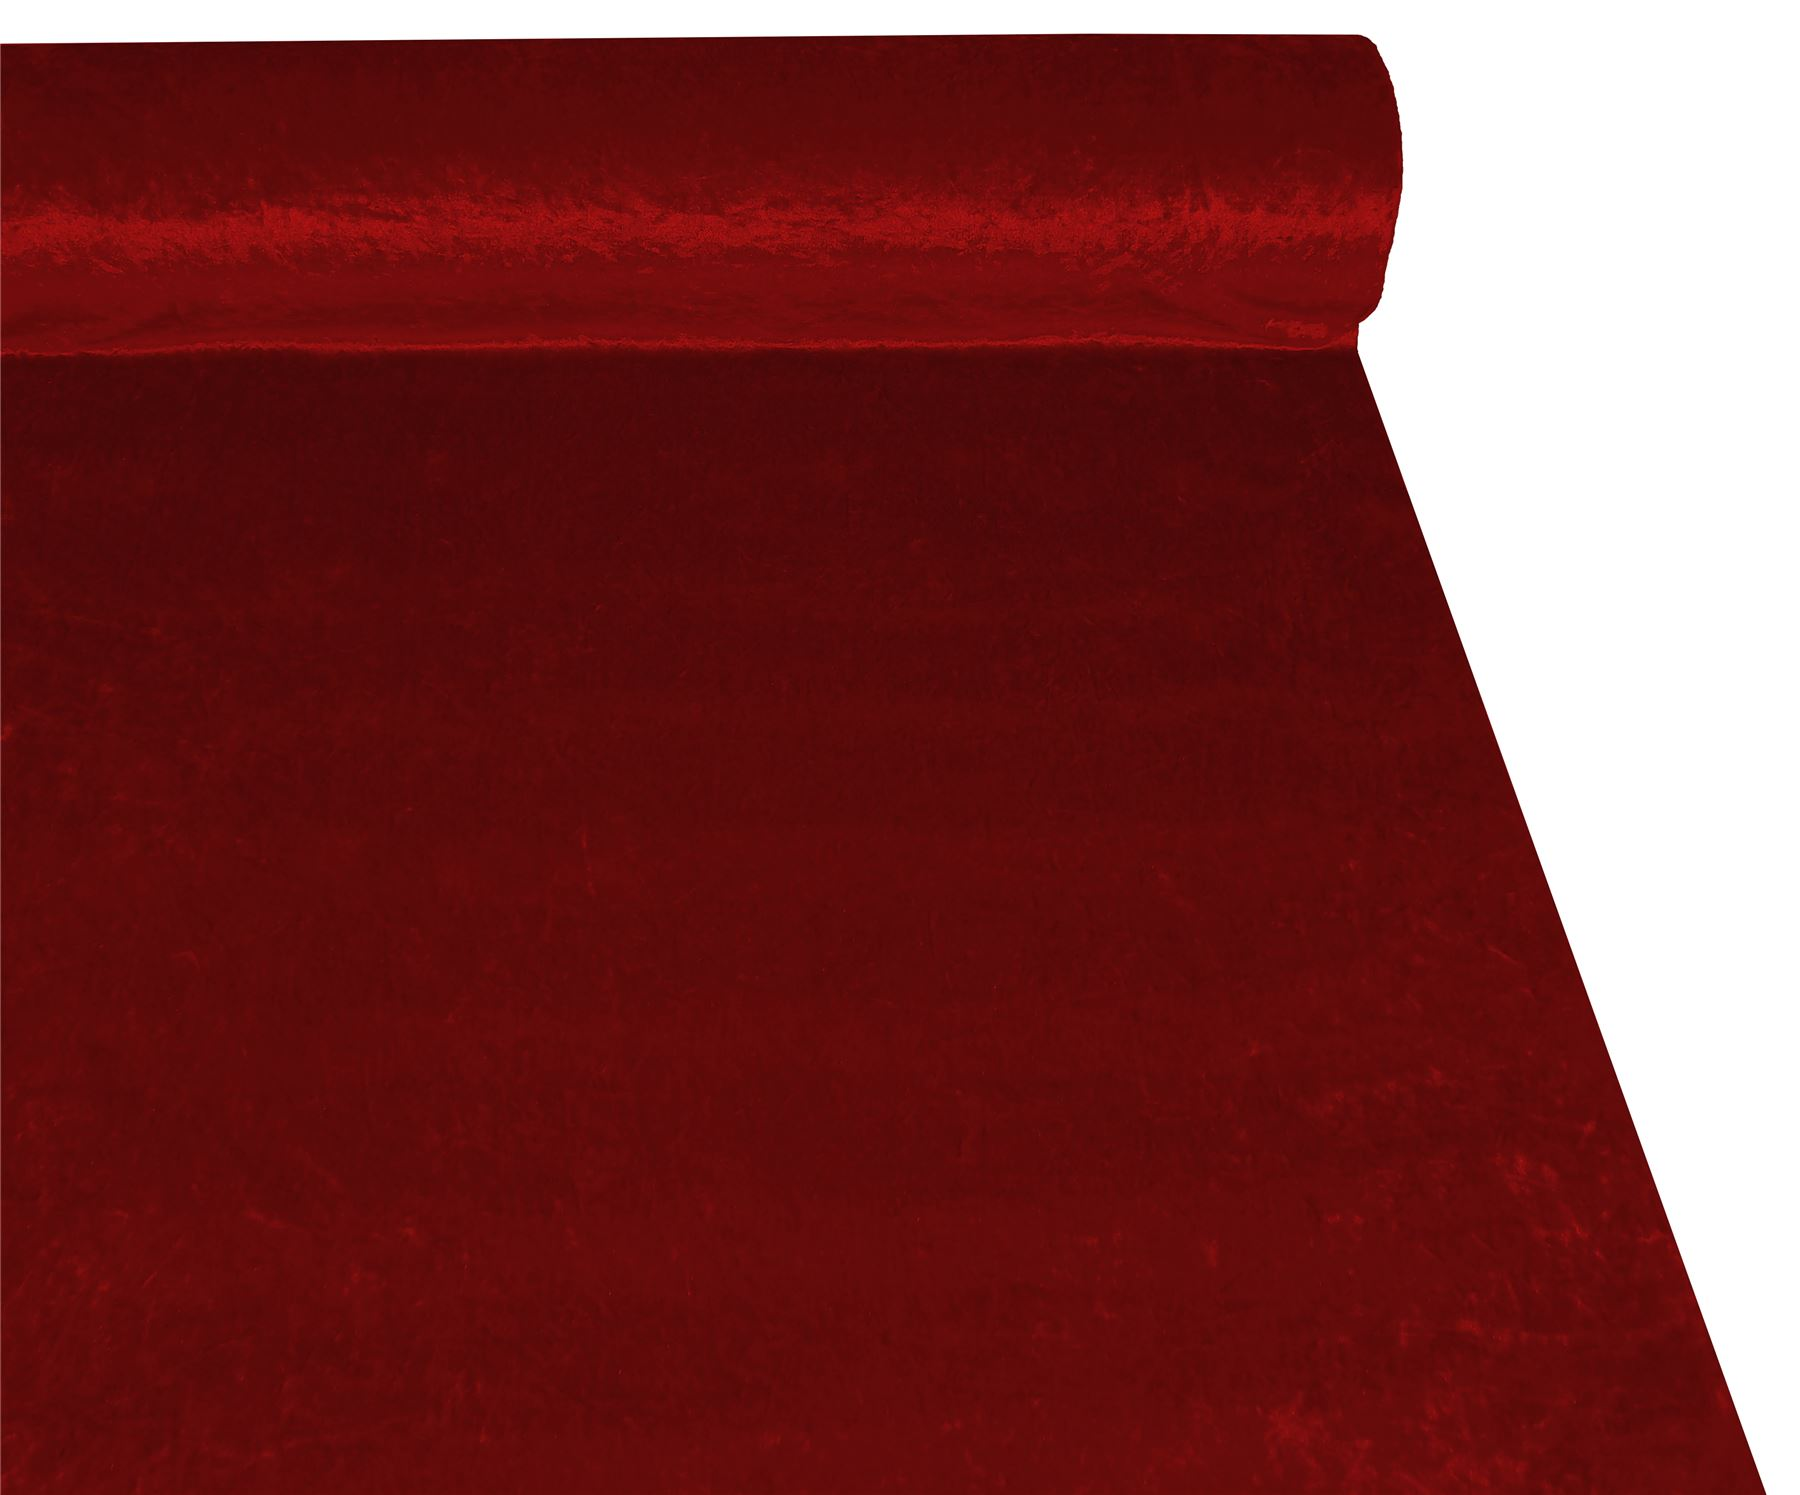 ruby red crushed velvet high quality fabric material 3. Black Bedroom Furniture Sets. Home Design Ideas